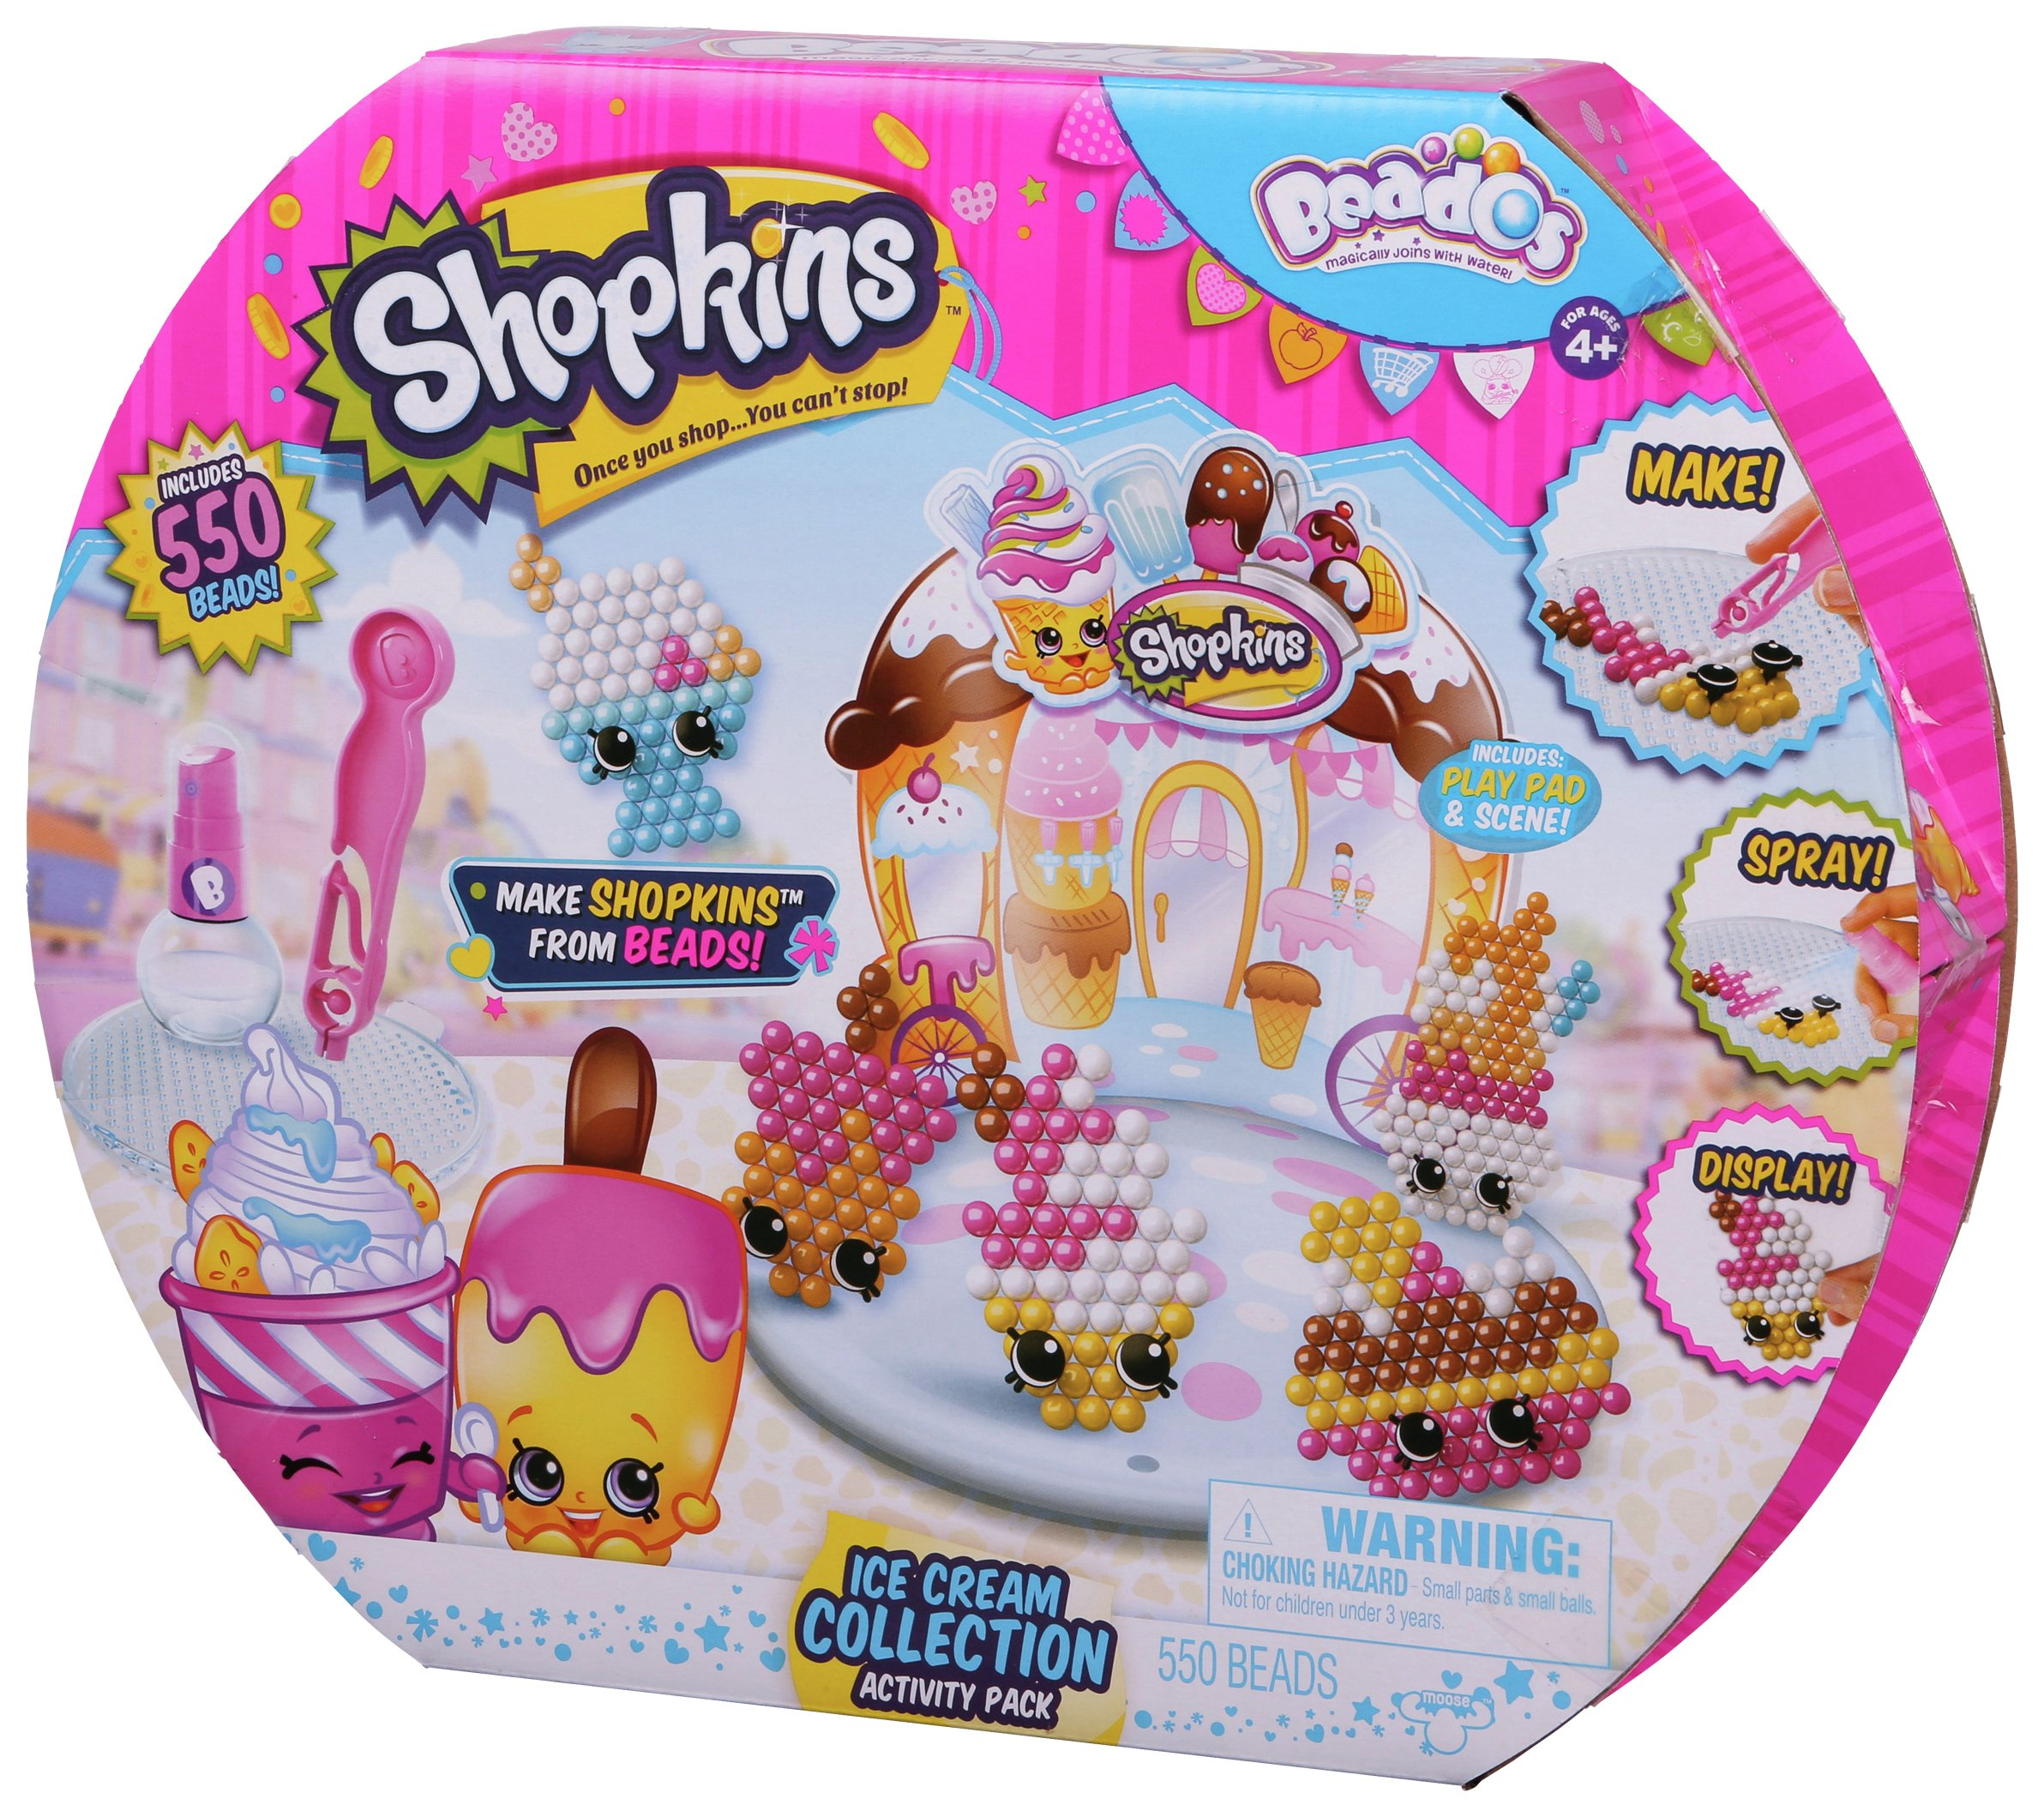 Image of Beados Shopkins Activity Pack